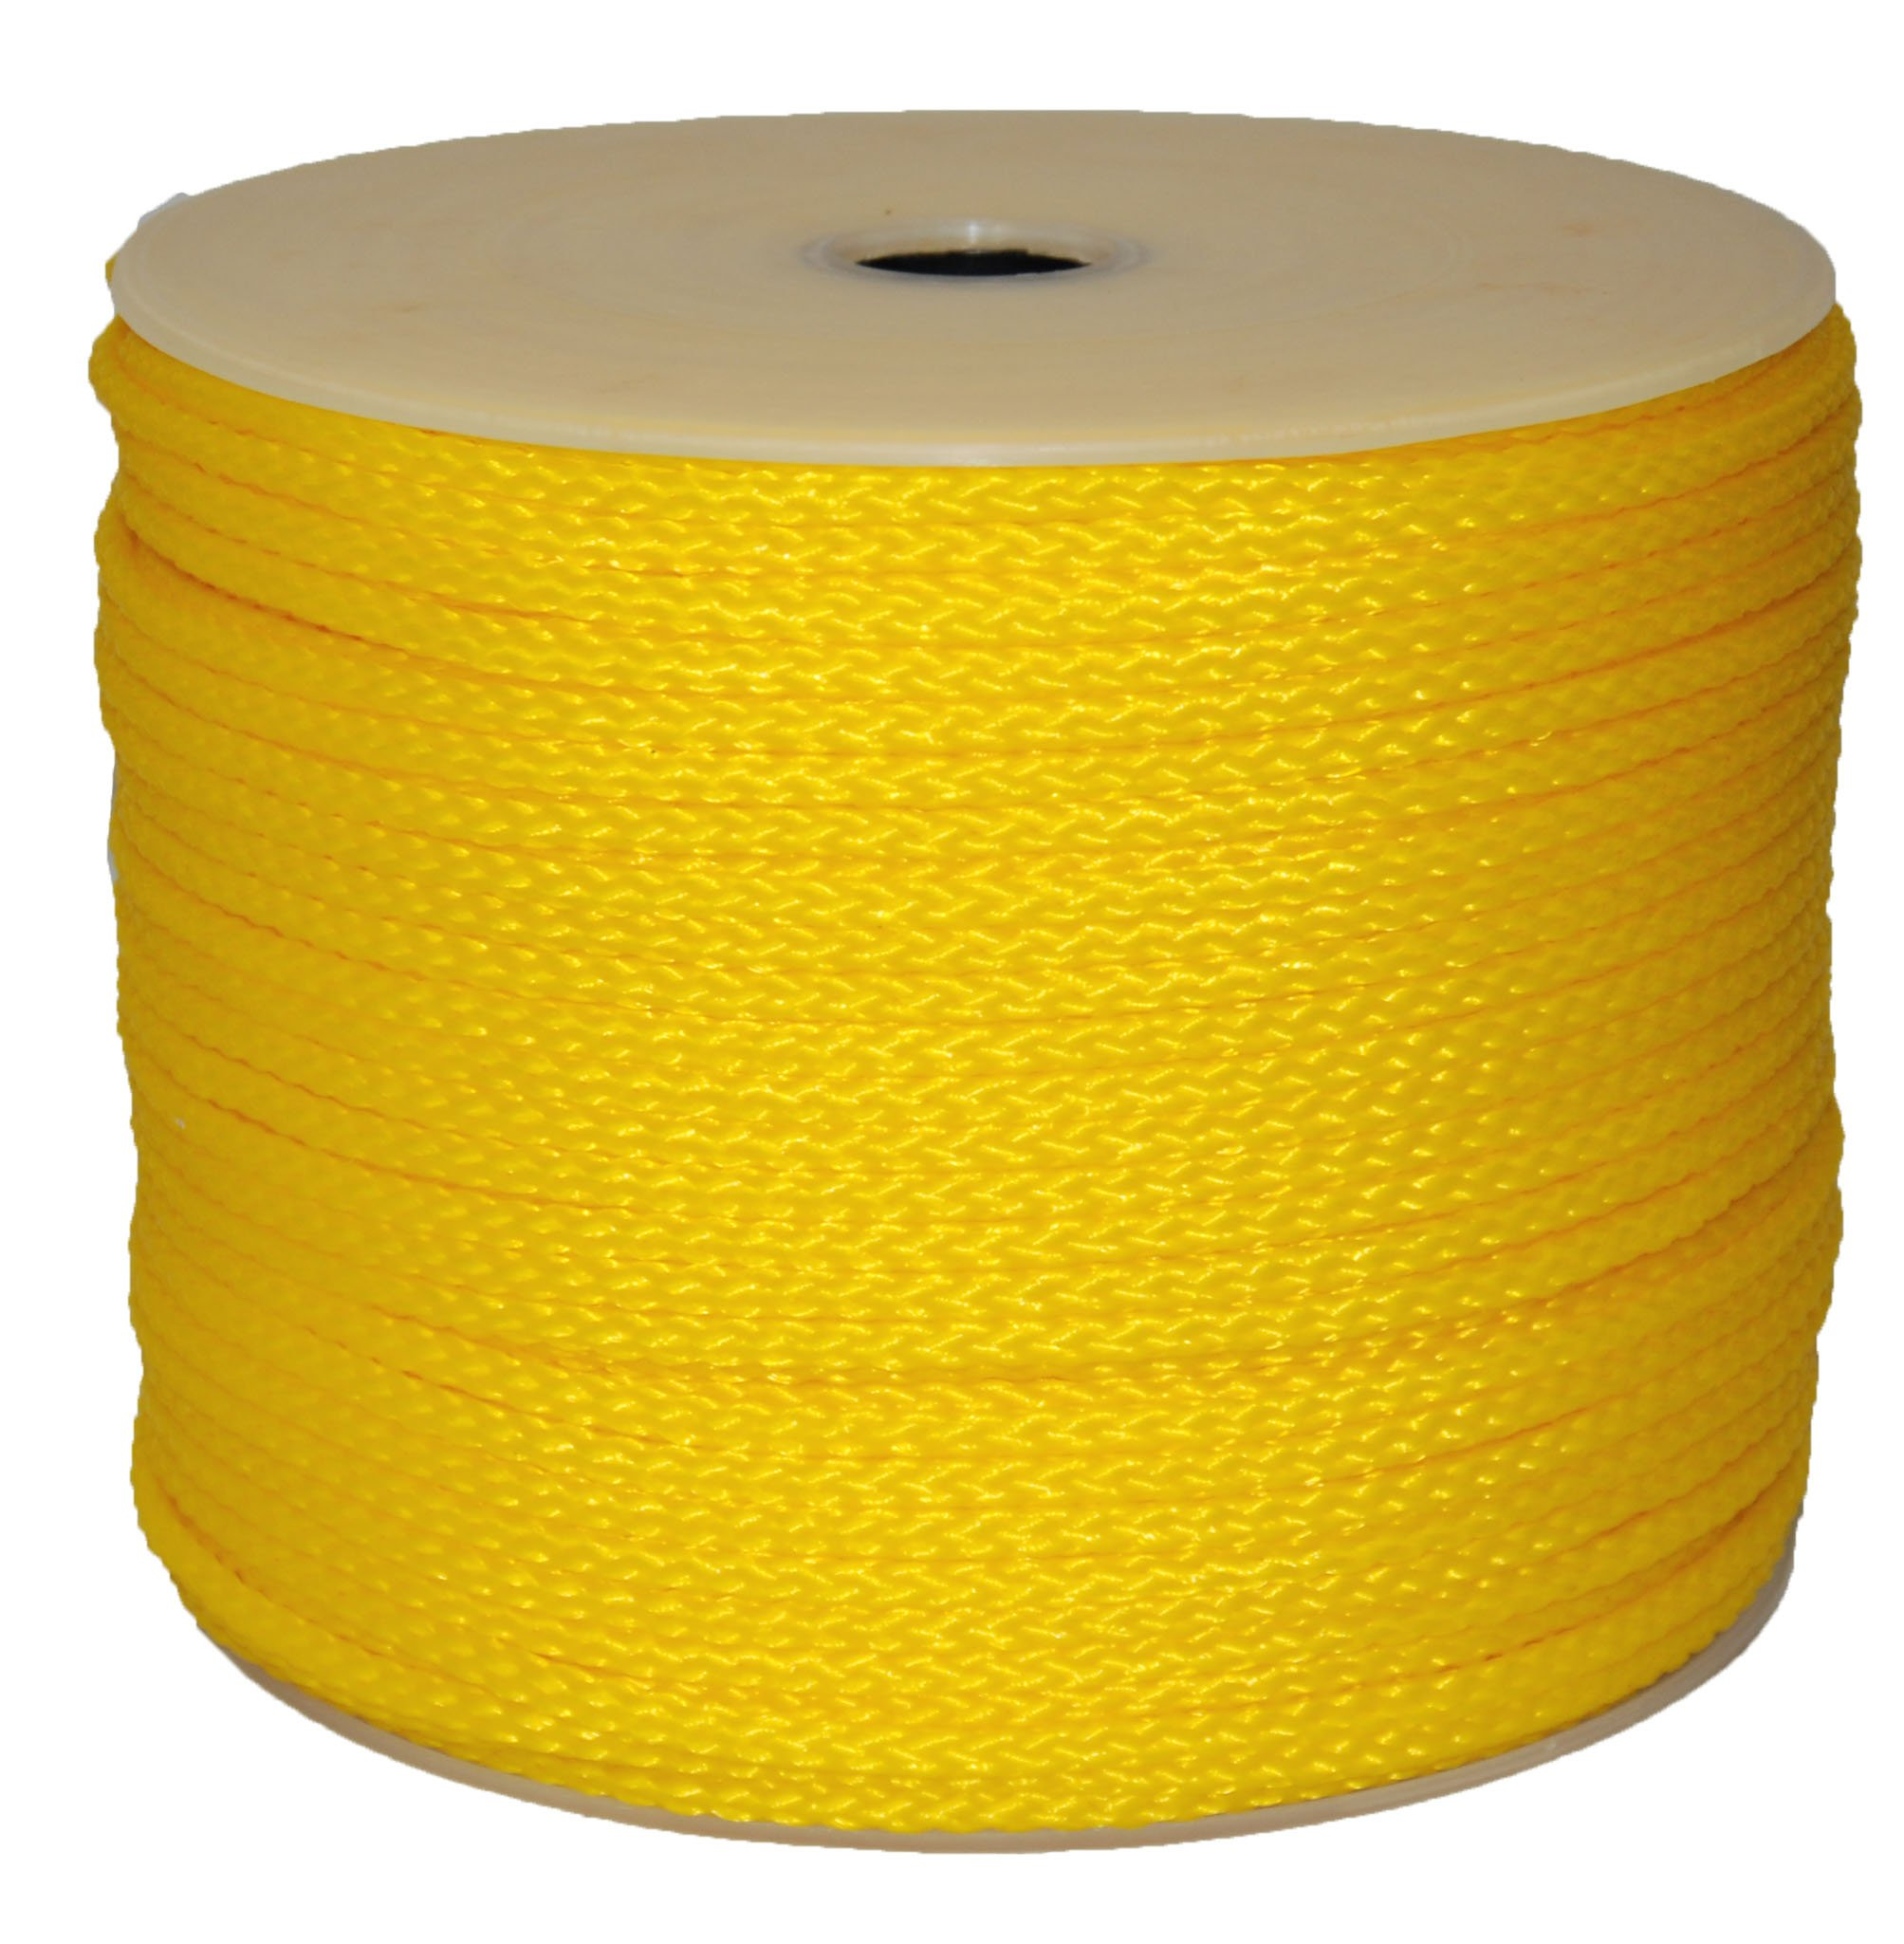 Wellington 10810/27-303 Hollow Braided Mono-Filament Rope, 1/4 in Dia x 1000 ft L, 81 lb, Polypropylene, Yellow